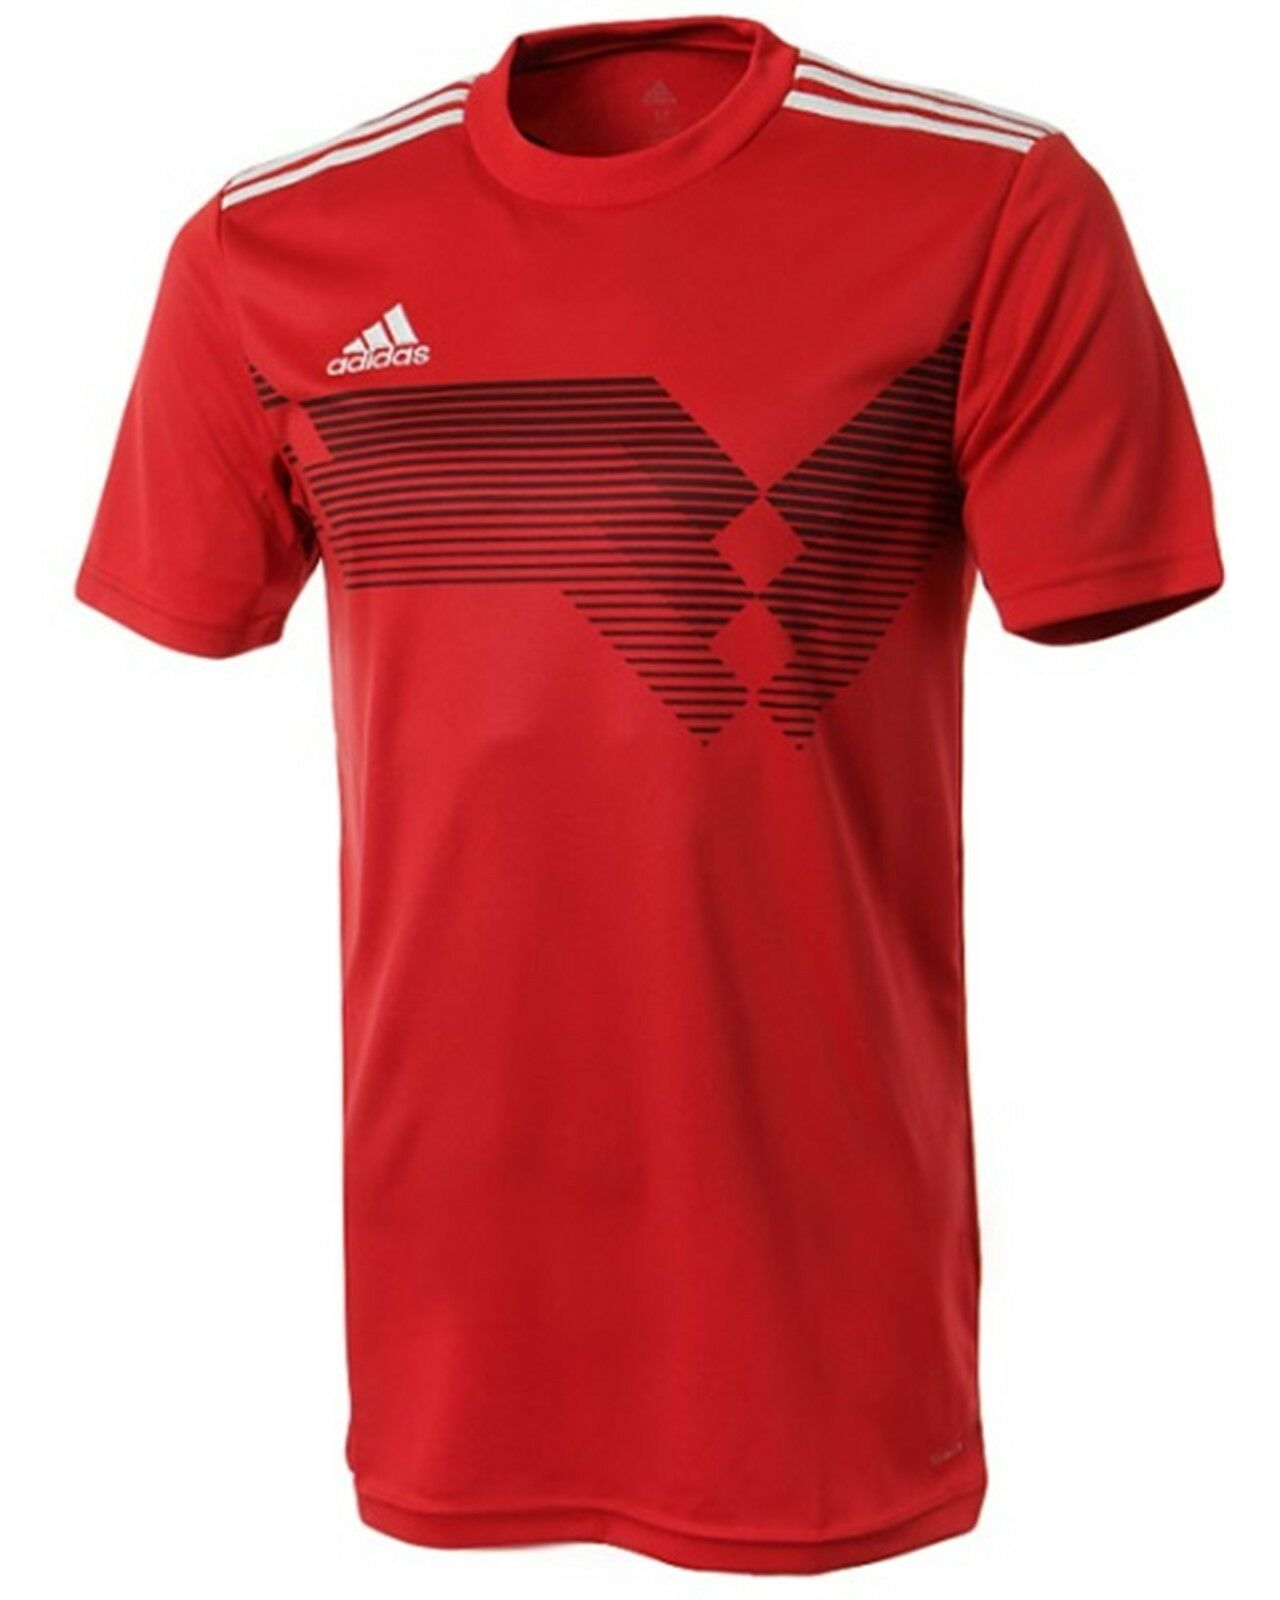 Adidas Youth  CAMPEON 19 S S Tee Shirt Running Training Red Kid Top Jersey DP3693  high quality & fast shipping